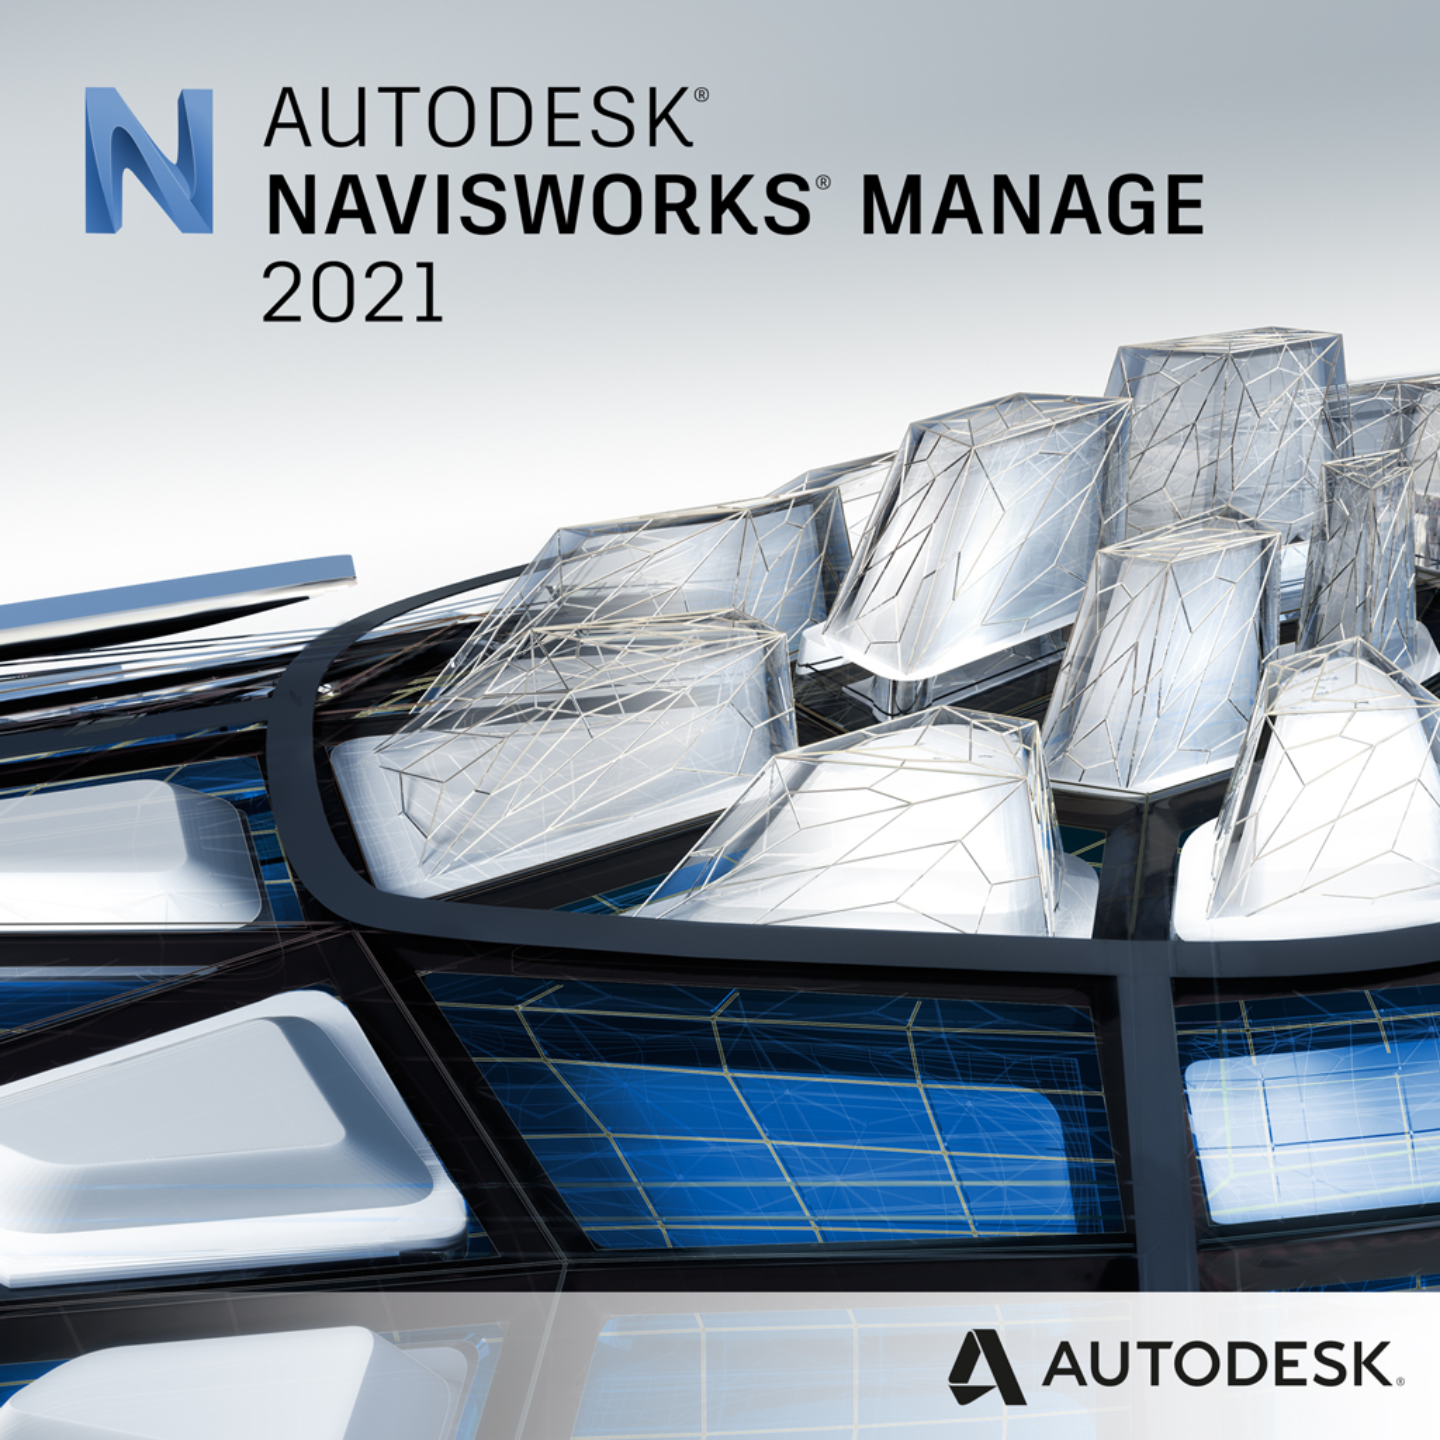 Autodesk Naviswork Manage 2021 (3 years)